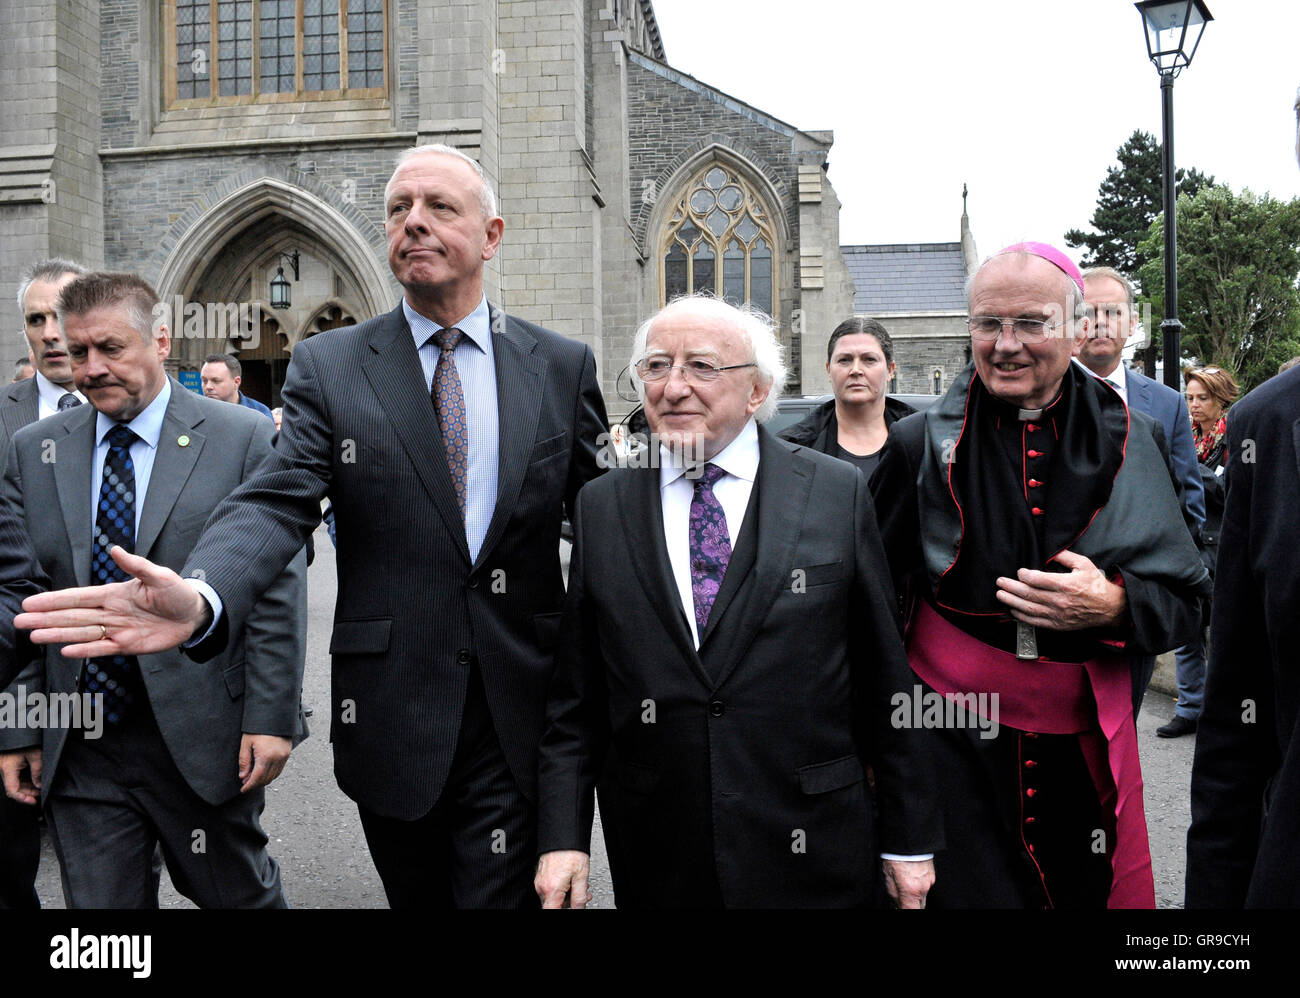 Michael D. Higgins (centre), President of Ireland with Catholic Bishop of Derry The Most Reverend Donal McKeown. - Stock Image